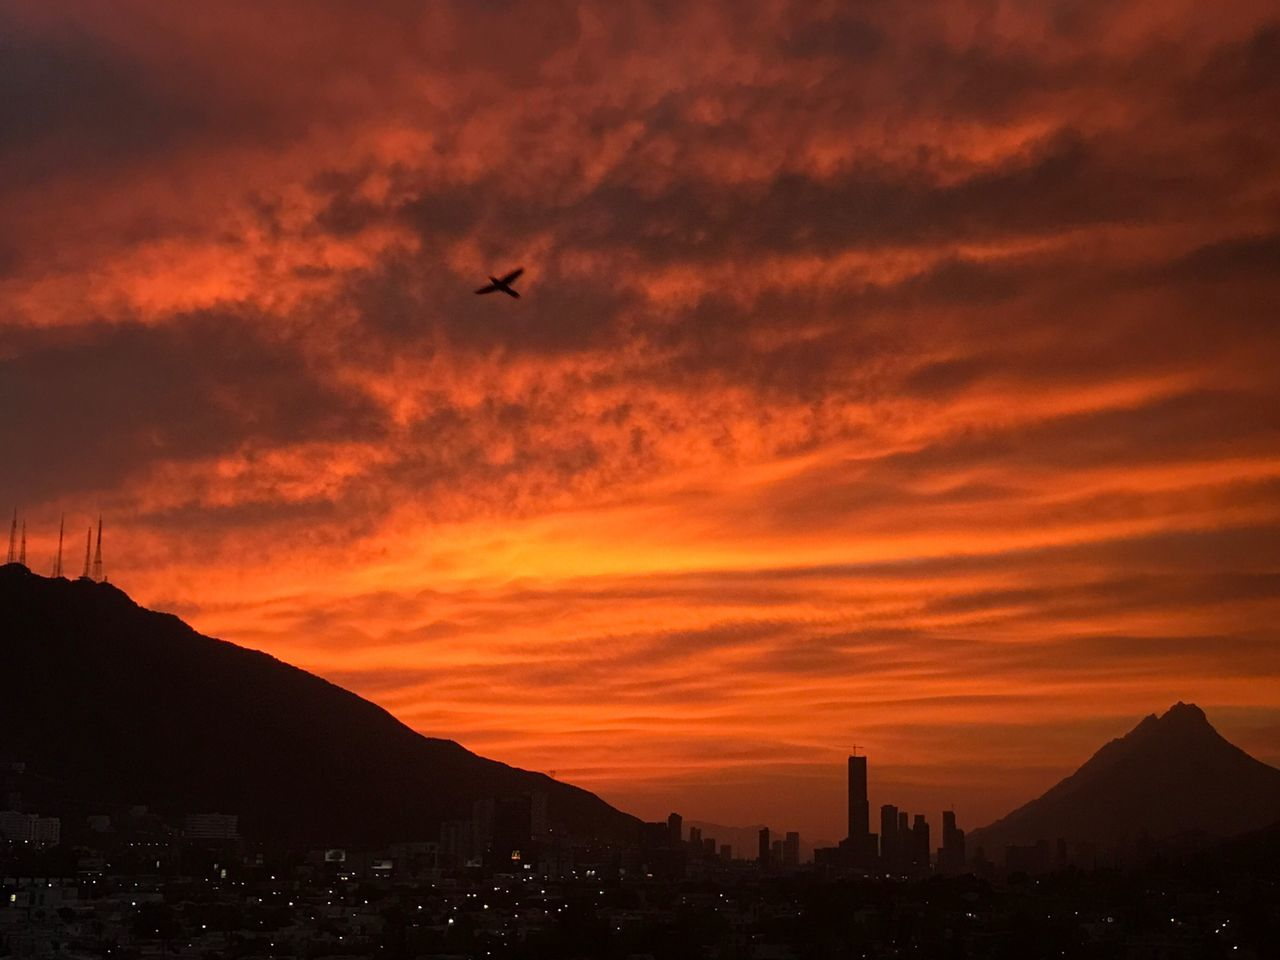 sunset, silhouette, flying, sky, building exterior, architecture, built structure, nature, mountain, cloud - sky, no people, outdoors, animal themes, bird, beauty in nature, cityscape, mid-air, one animal, city, scenics, animals in the wild, skyscraper, spread wings, day